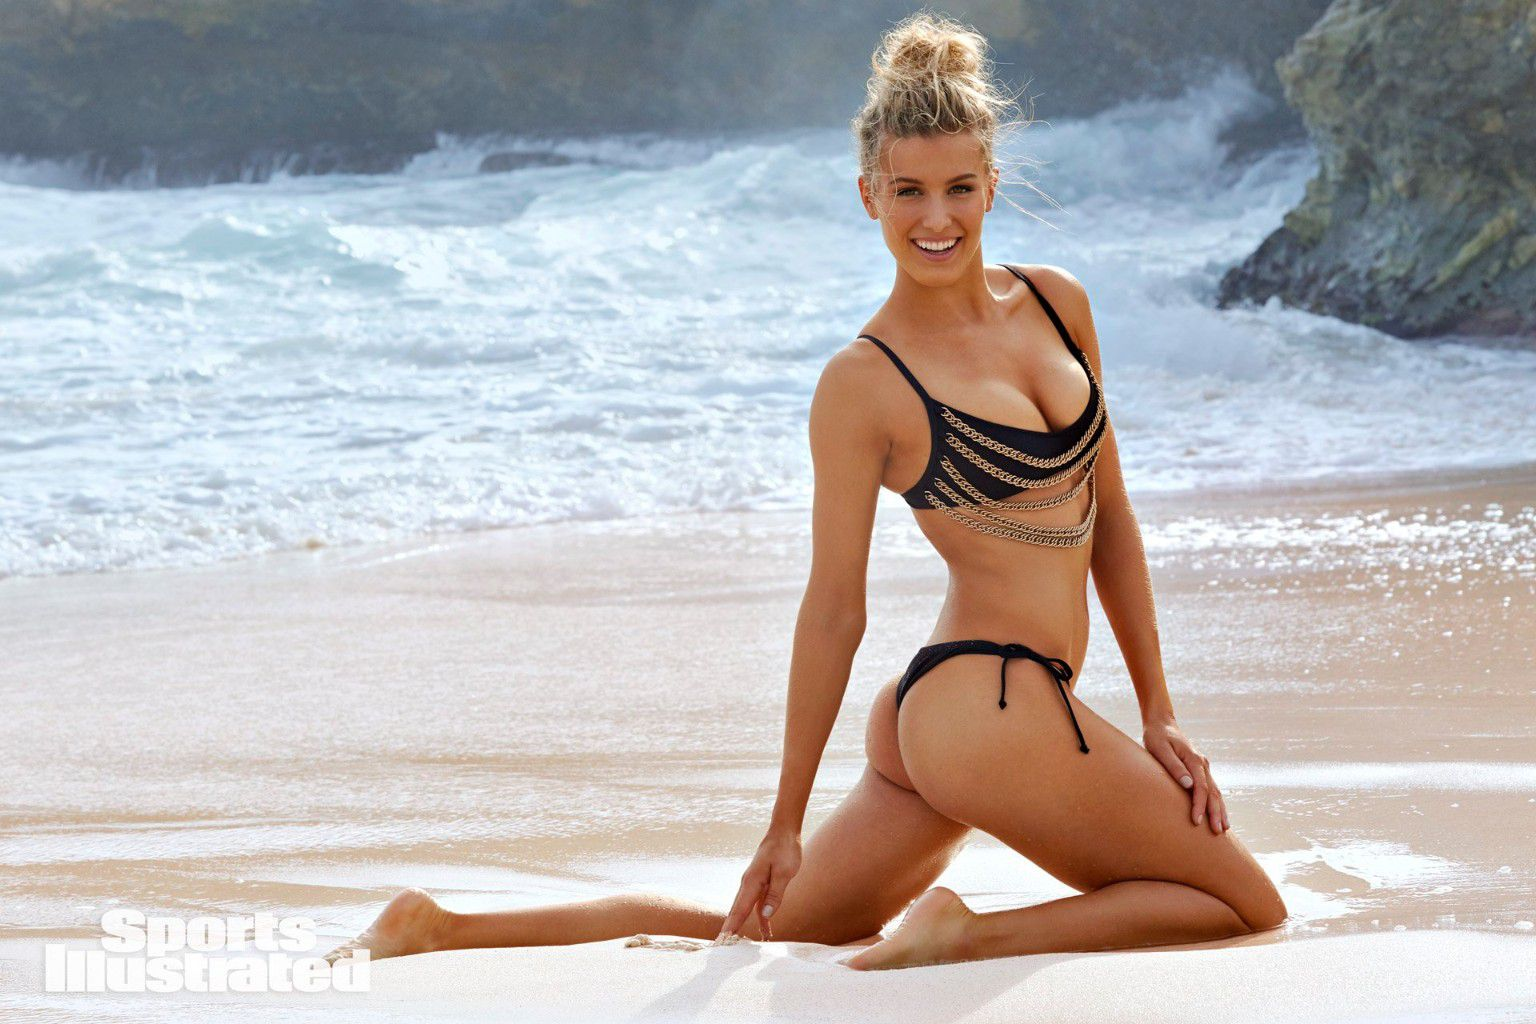 eugenie-bouchard-super-sexy-in-sports-illustrated-swimsuit-issue-2018-4